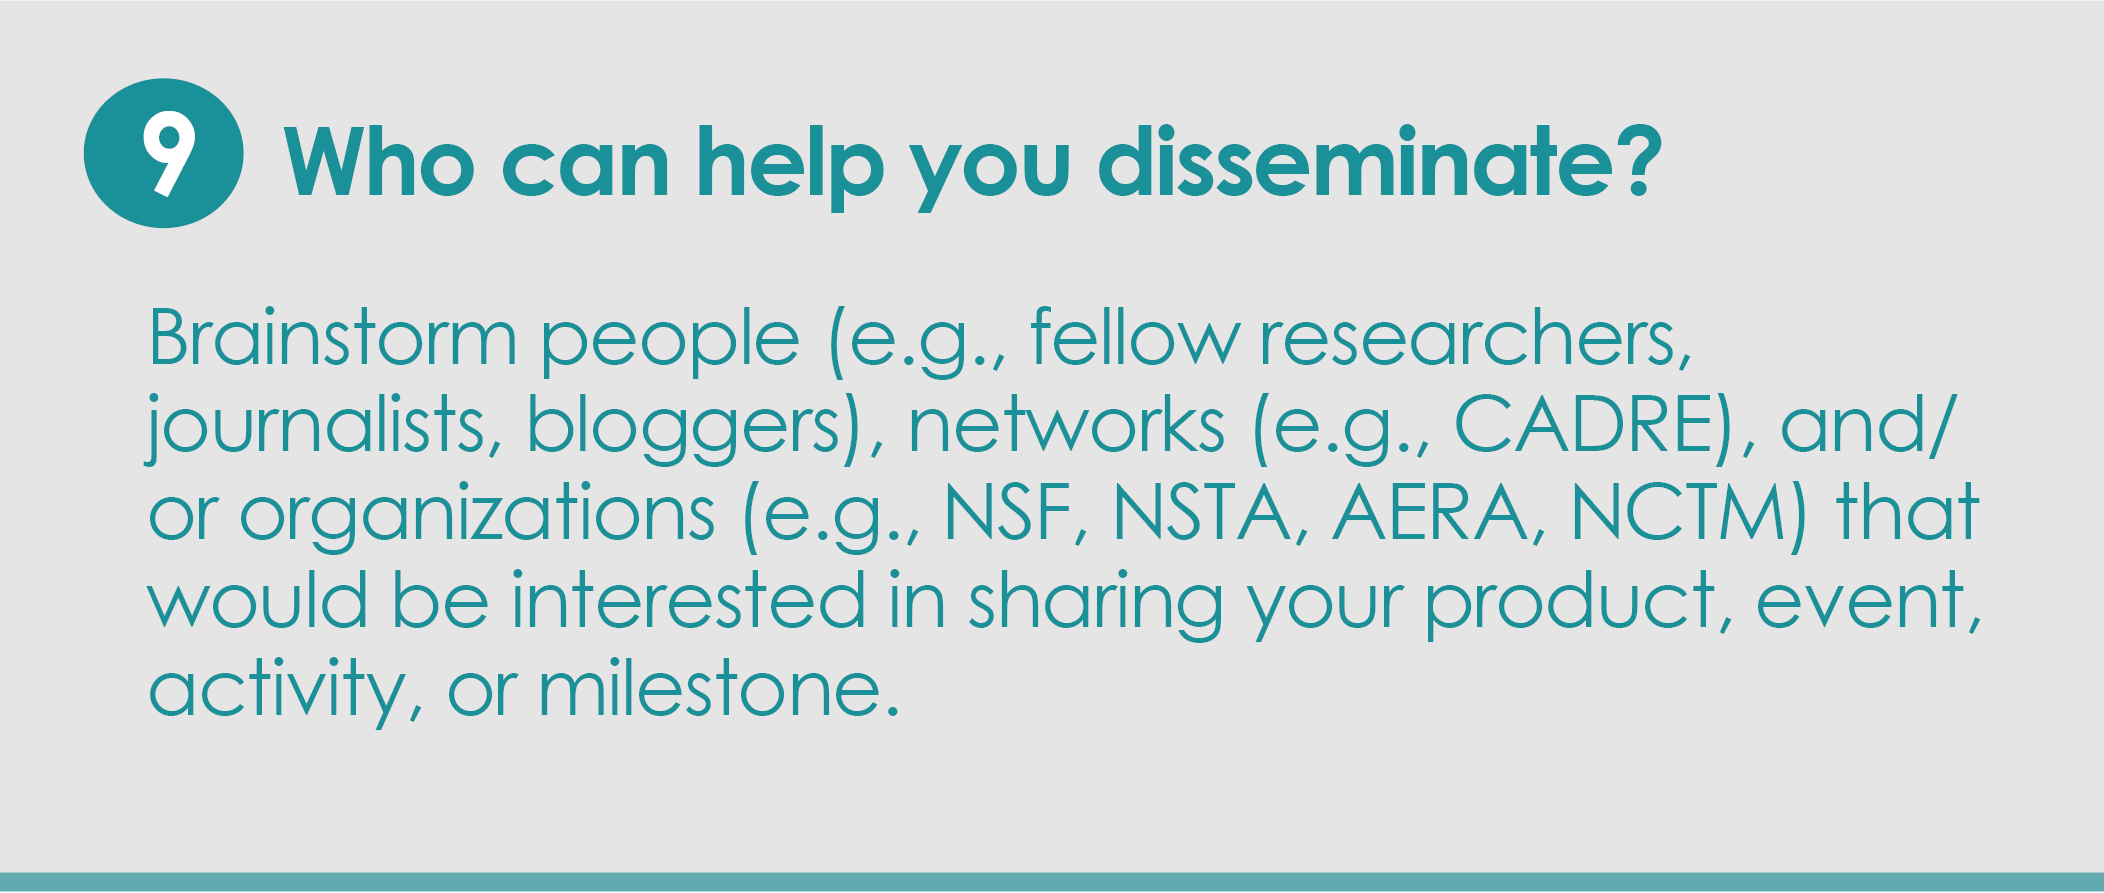 Step 9: Who can help you disseminate? Brainstorm people (e.g., fellow researchers, journalists, bloggers), networks (e.g., CADRE), and/or organizations (e.g., NSF, NSTA, AERA, NCTM) that would be interested in sharing your product, event, activity or milestone.